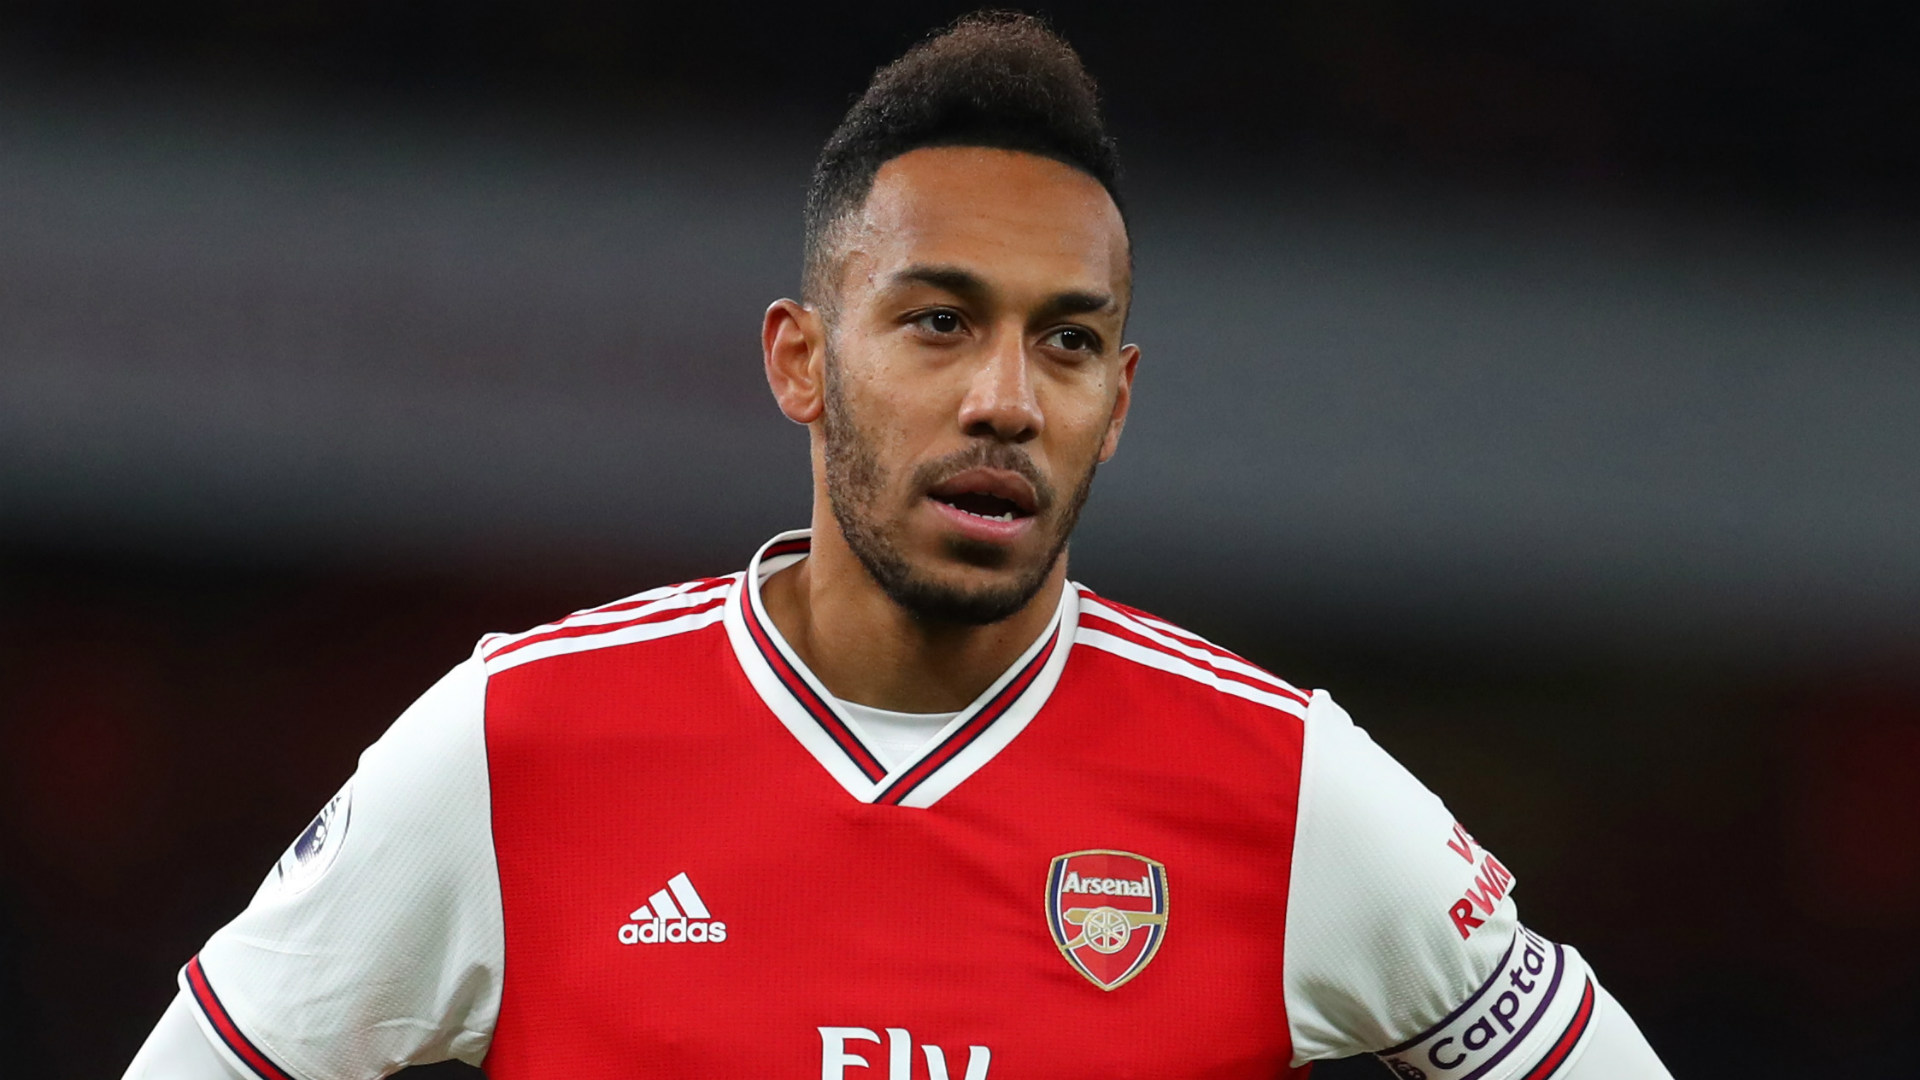 'Aubameyang has been quiet for awful Arsenal' – Under-fire Emery needs a response, says Nicholas